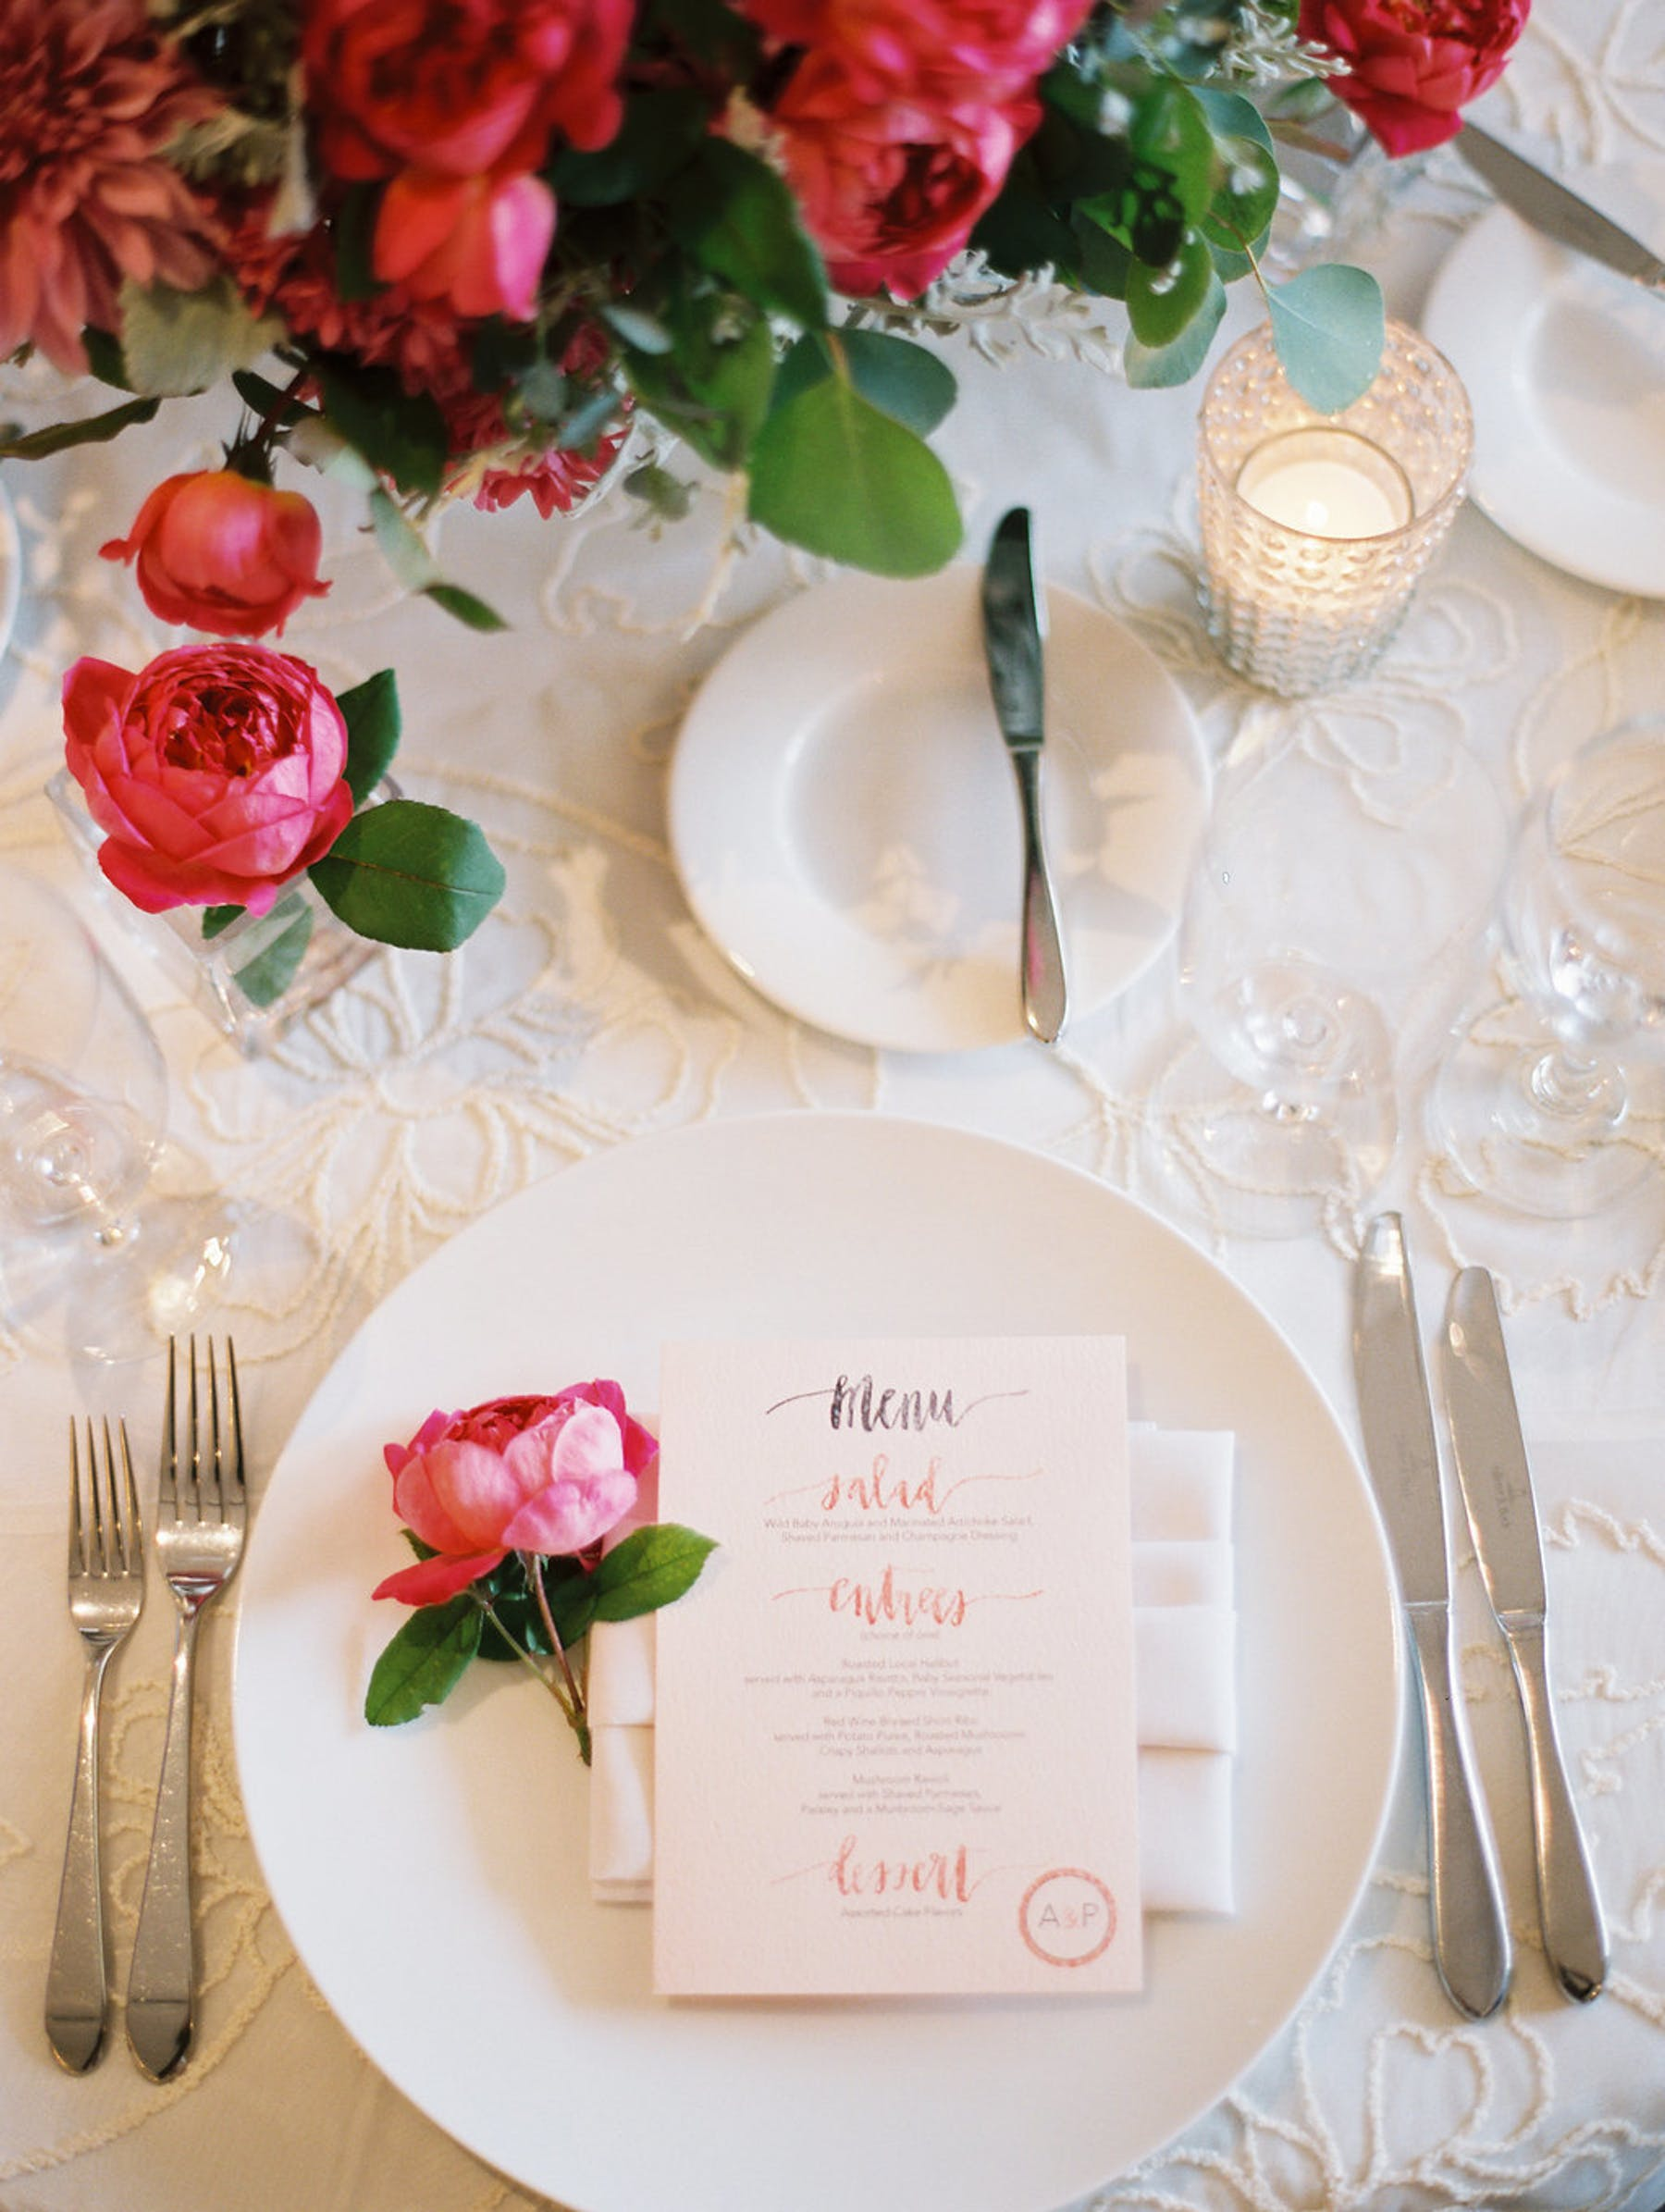 www.santabarbarawedding.com | El Encanto | Coco Rose Design | This Modern Romance | Reception Place Setting